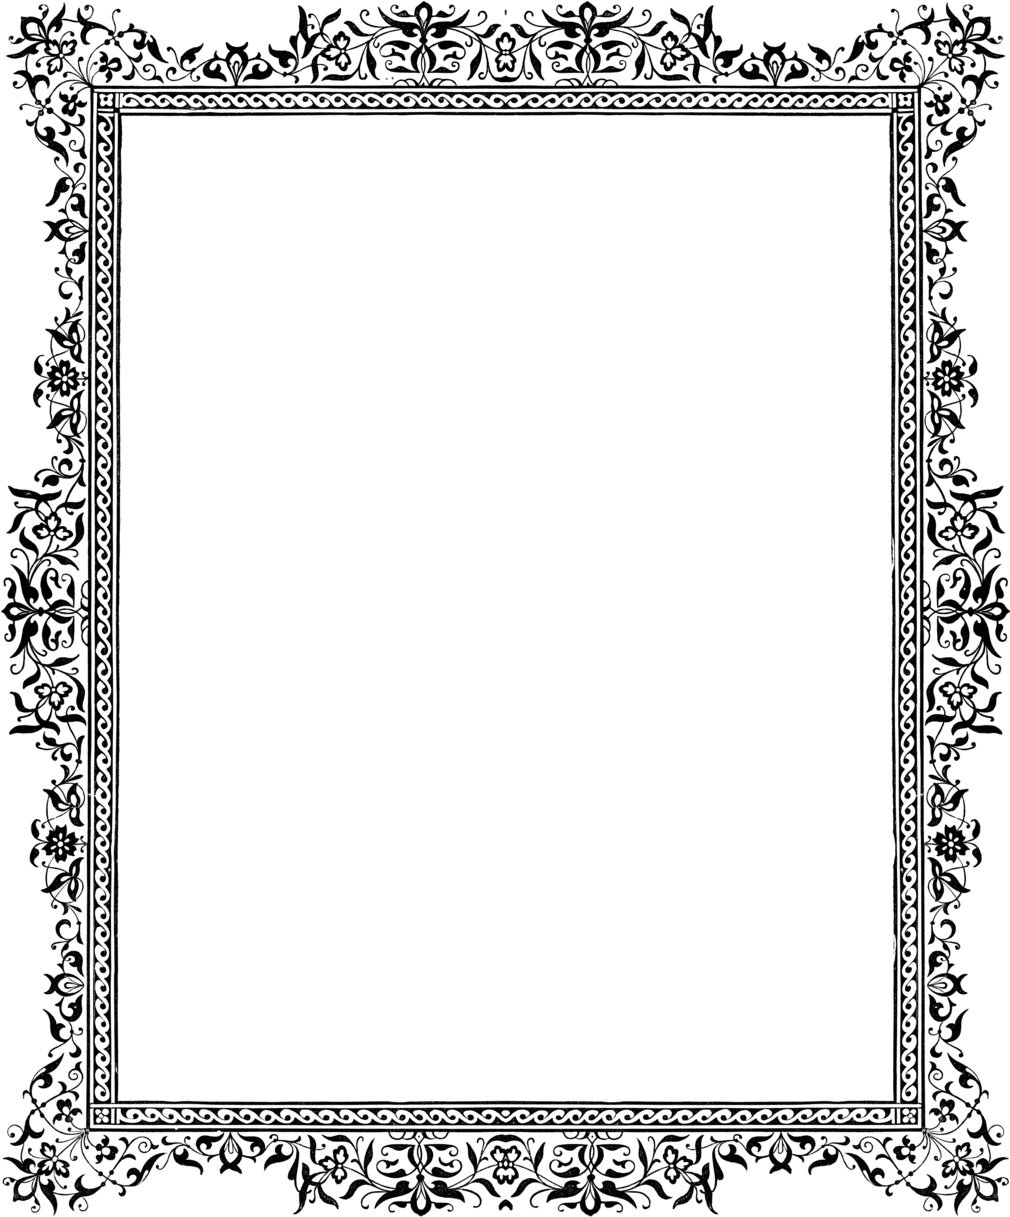 P Border Monochrome X Free Images At Clker Com Vector